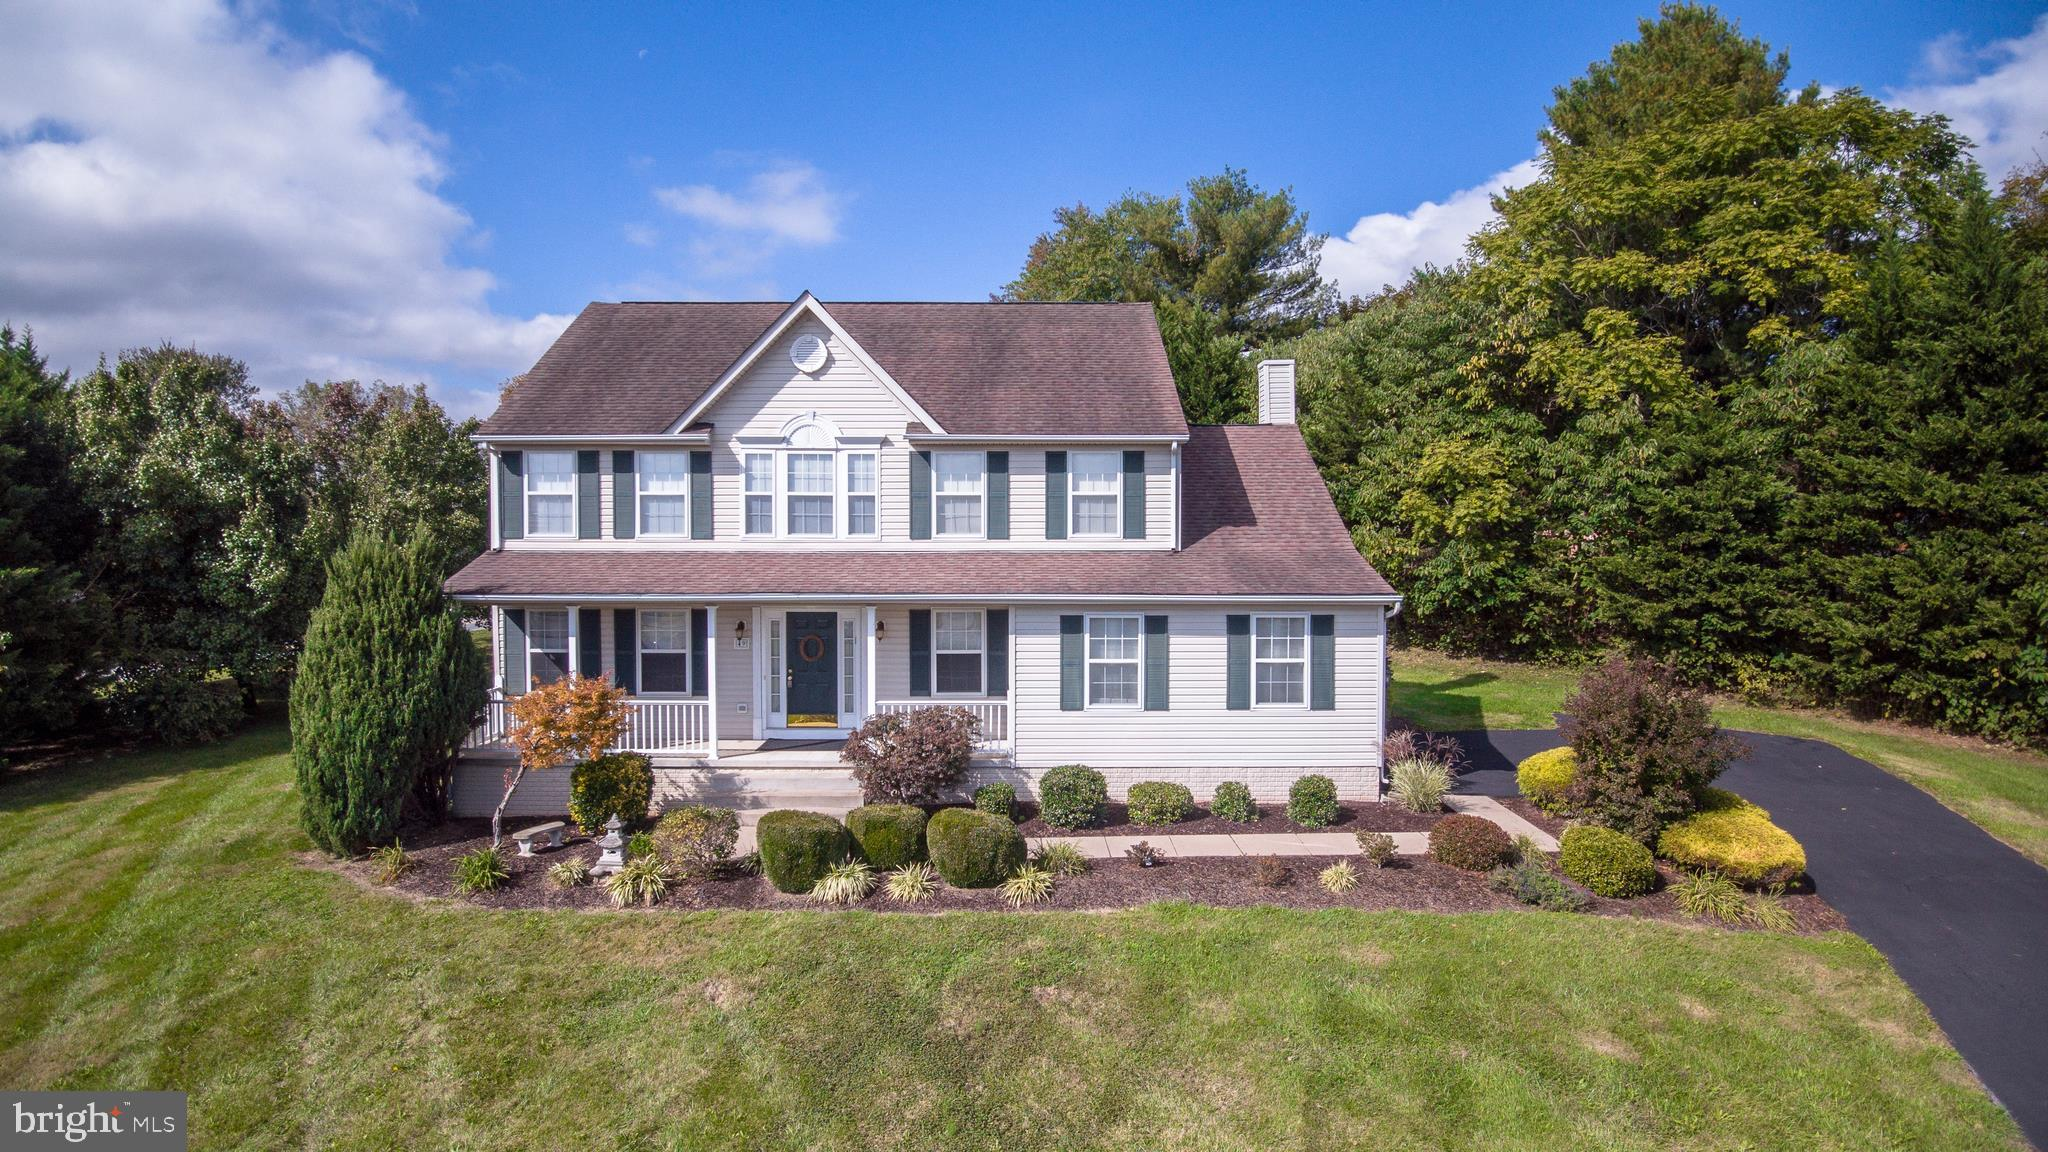 49 TRAVELERS COURT, HARPERS FERRY, WV 25425